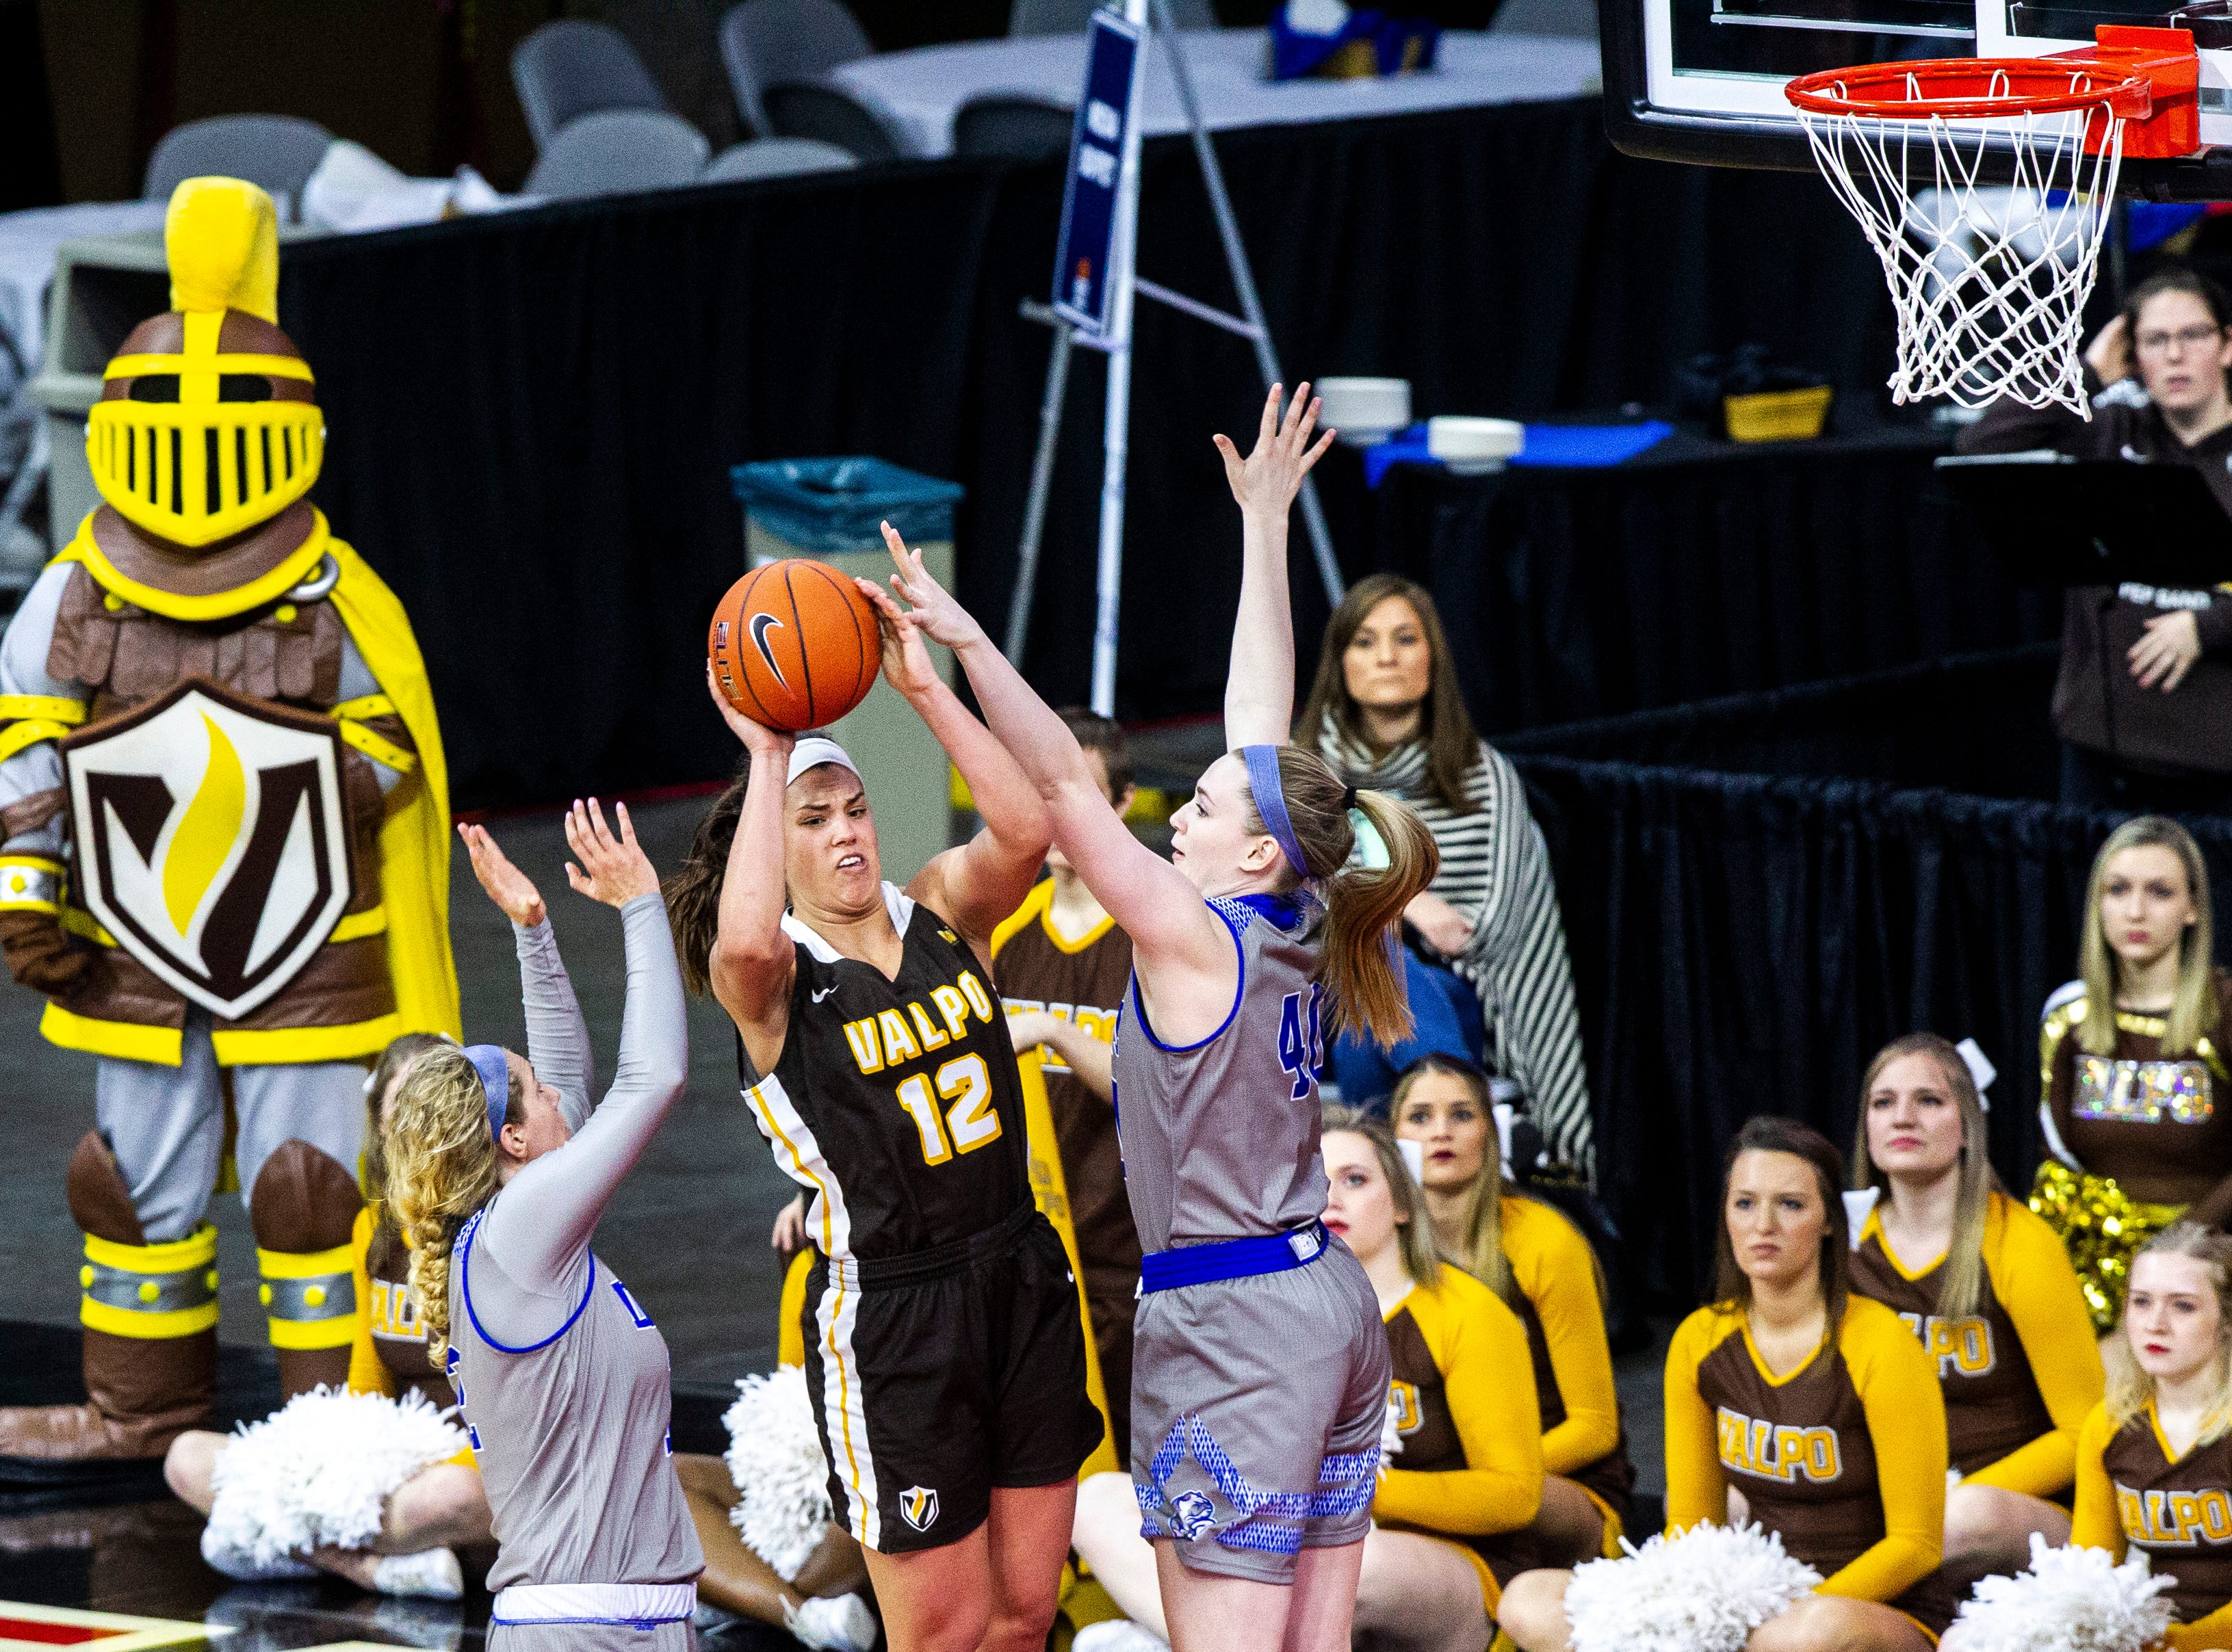 Valparaiso's Addison Stoller (12) gets defended by Drake's Mya Mertz, right, and Drake's Brenni Rose, left, during a NCAA Missouri Valley Conference women's basketball quarterfinal tournament game, Friday, March 15, 2019, at the TaxSlayer Center in Moline, Illinois.